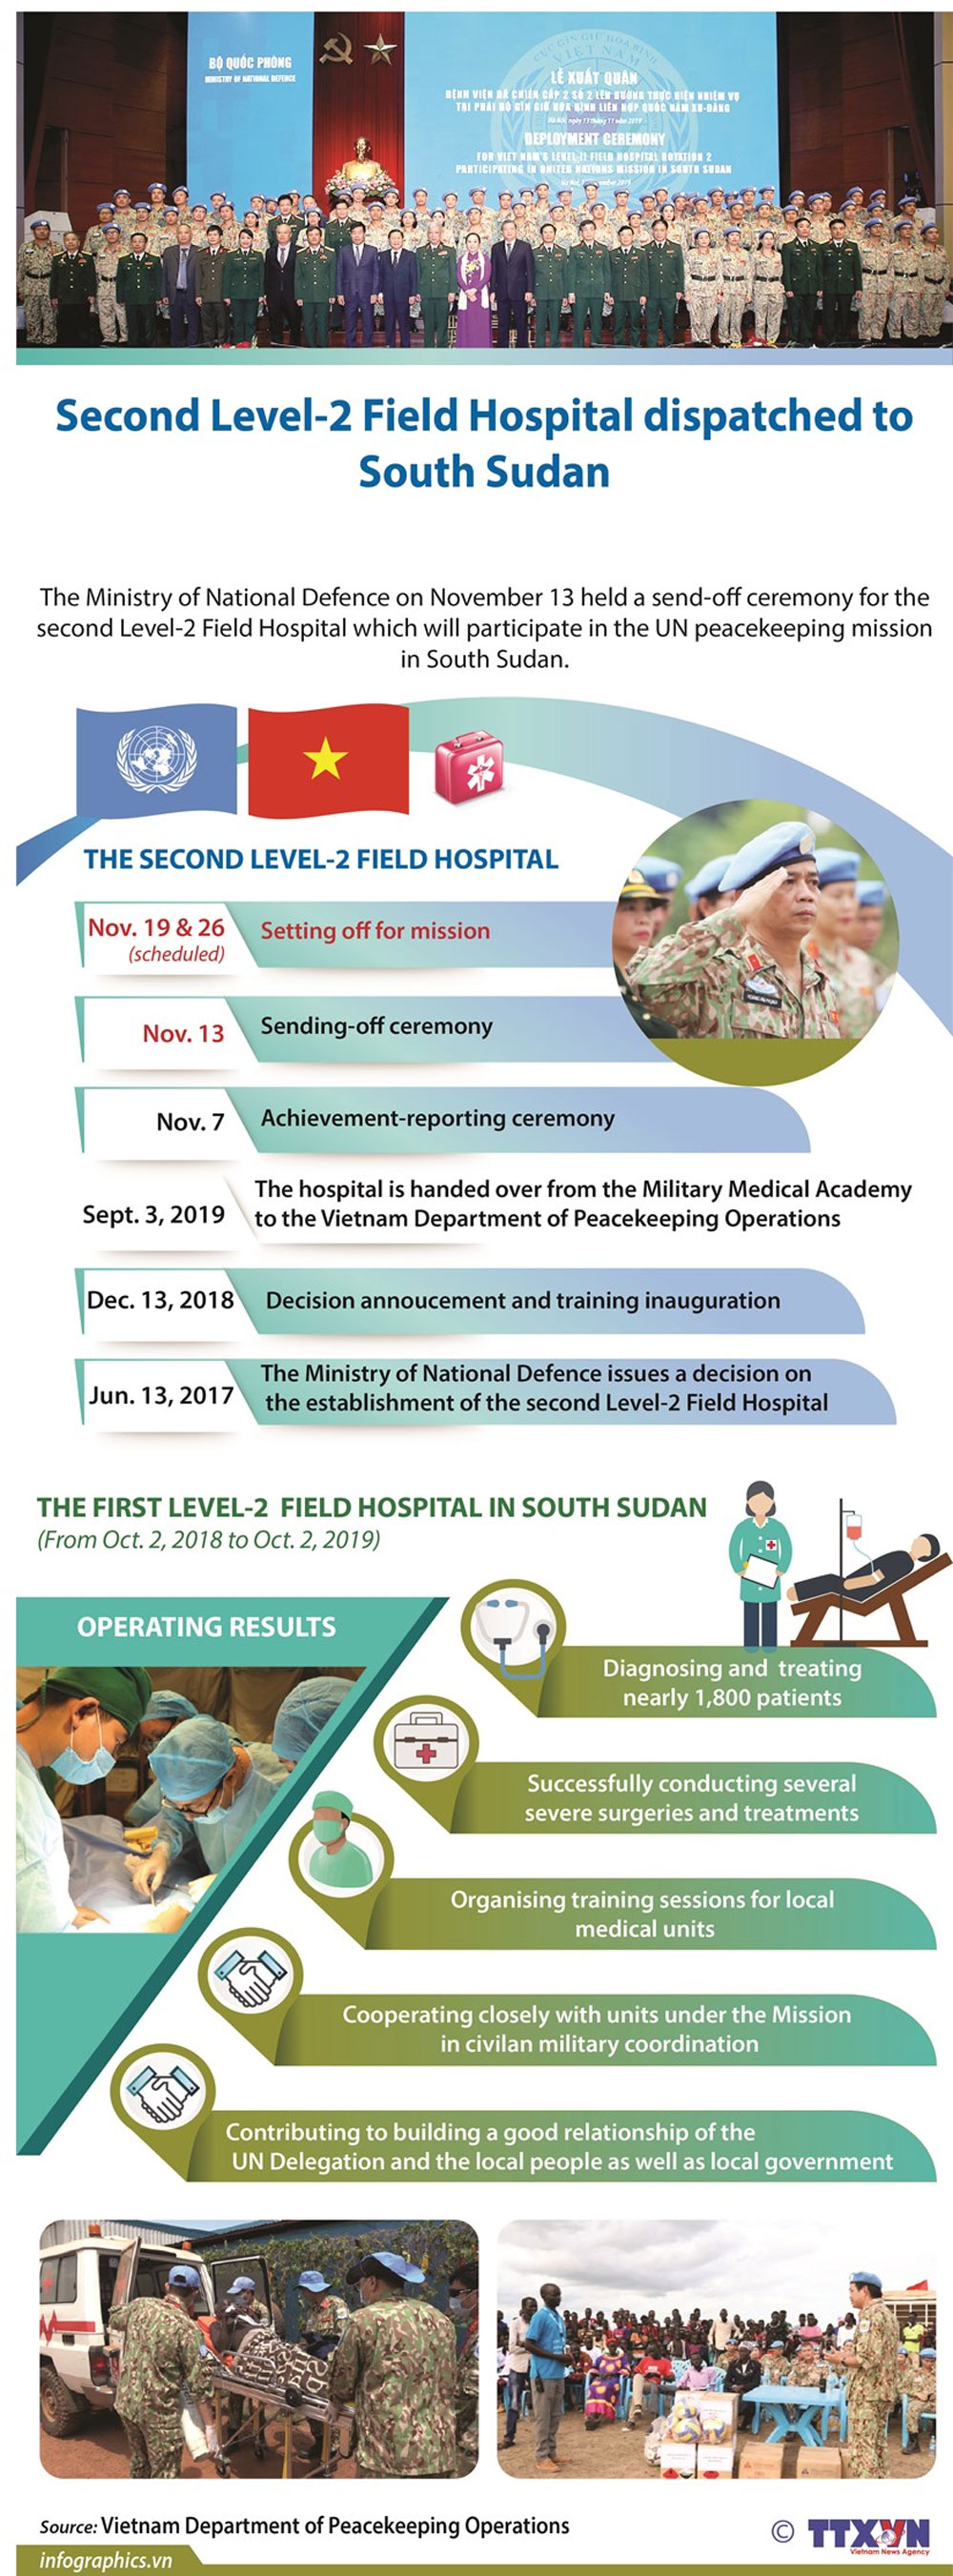 Second Level-2 Field Hospital, South Sudan, send-off ceremony, UN peacekeeping mission